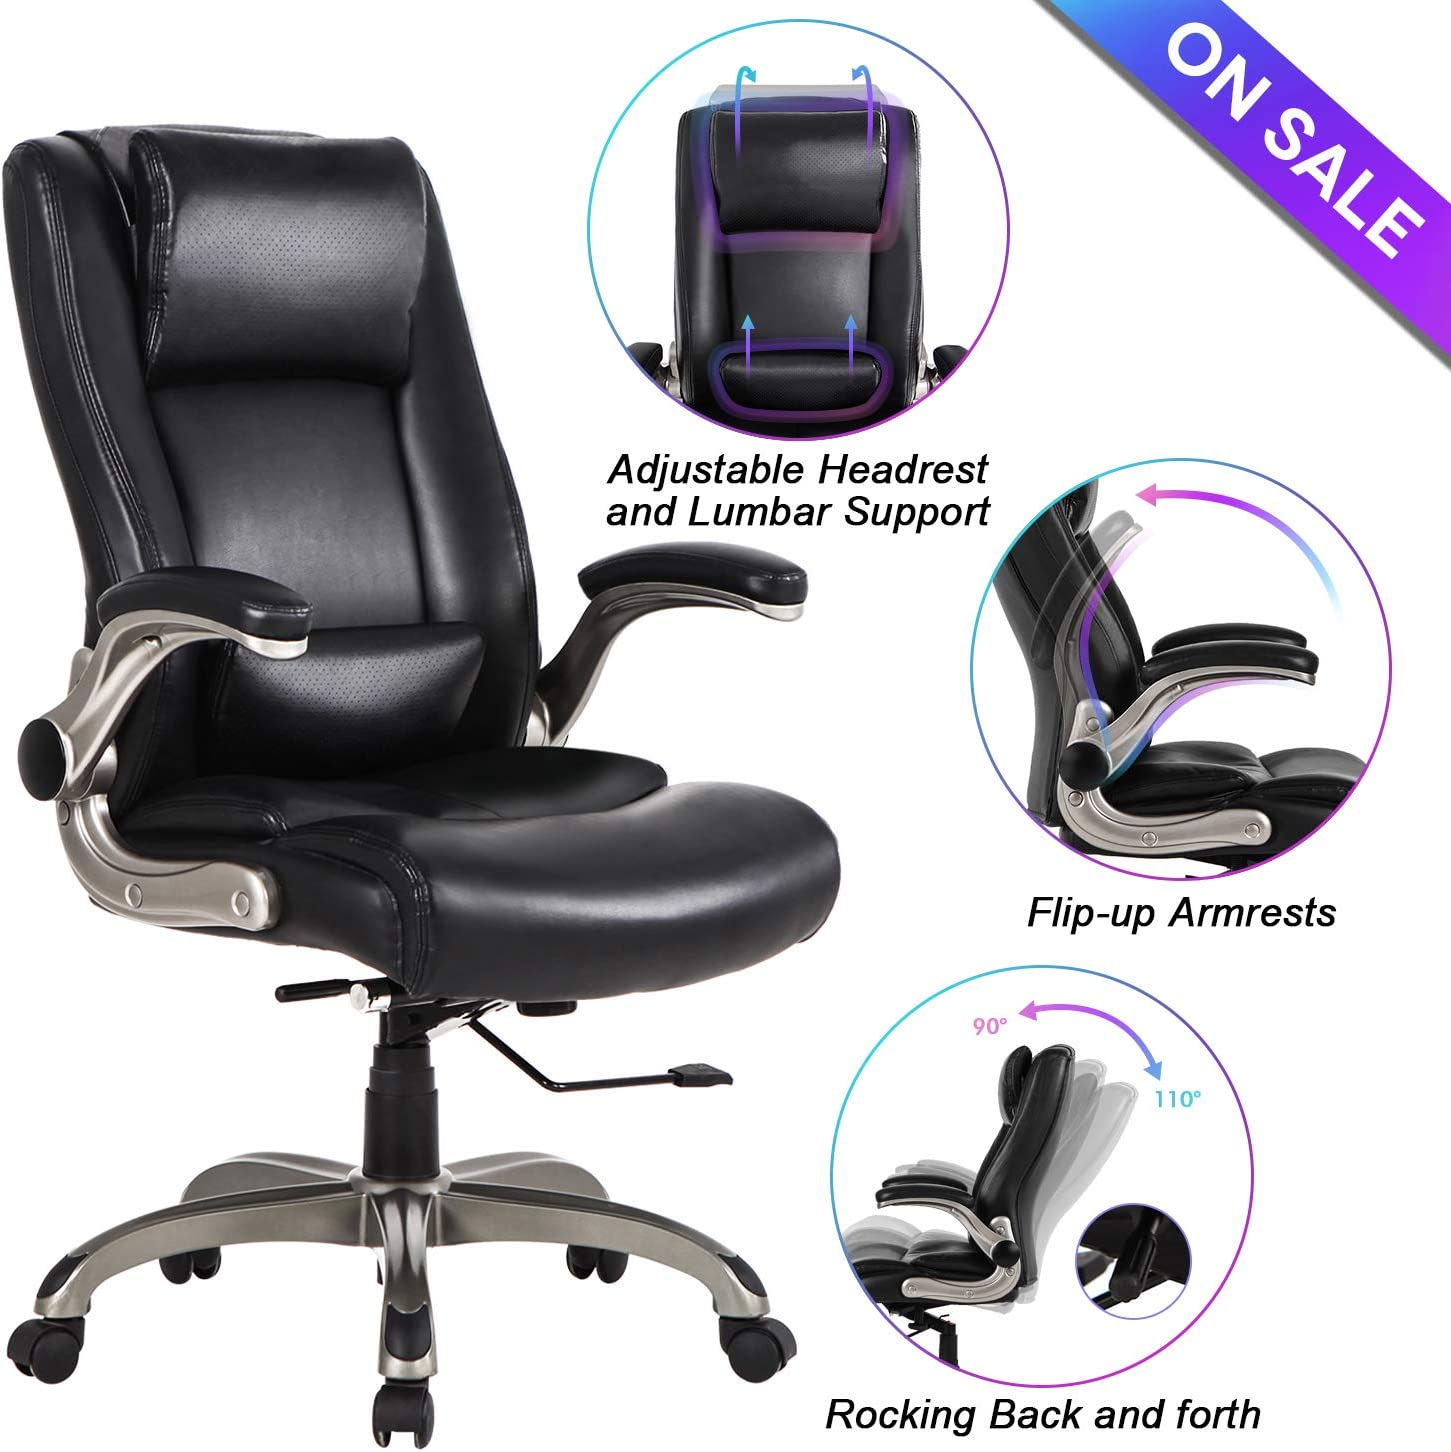 Office Chair High Back Leather Executive Computer Desk Chair – Adjustable Lumbar Support, Slidable Headrest and Flip-up Arms, Thick Padding for Comfort